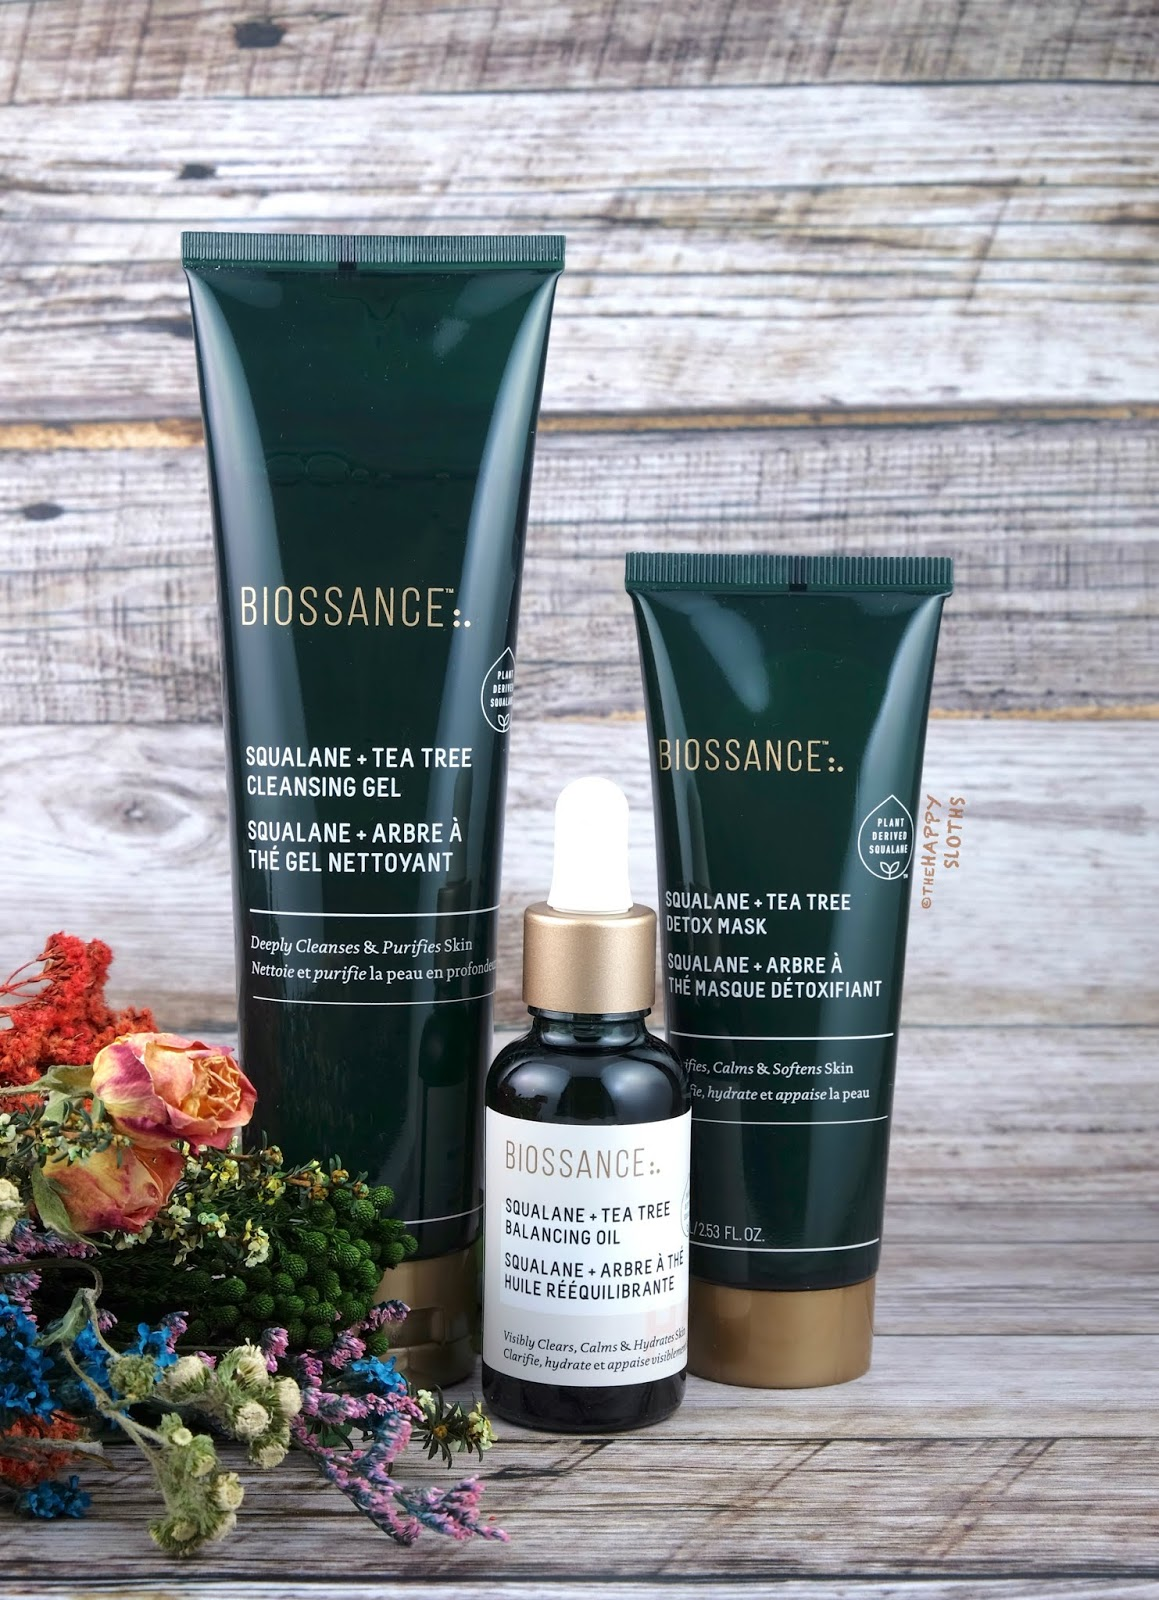 Biossance | Squalane + Tea Tree Cleansing Gel, Detox Mask & Balancing Oil: Review